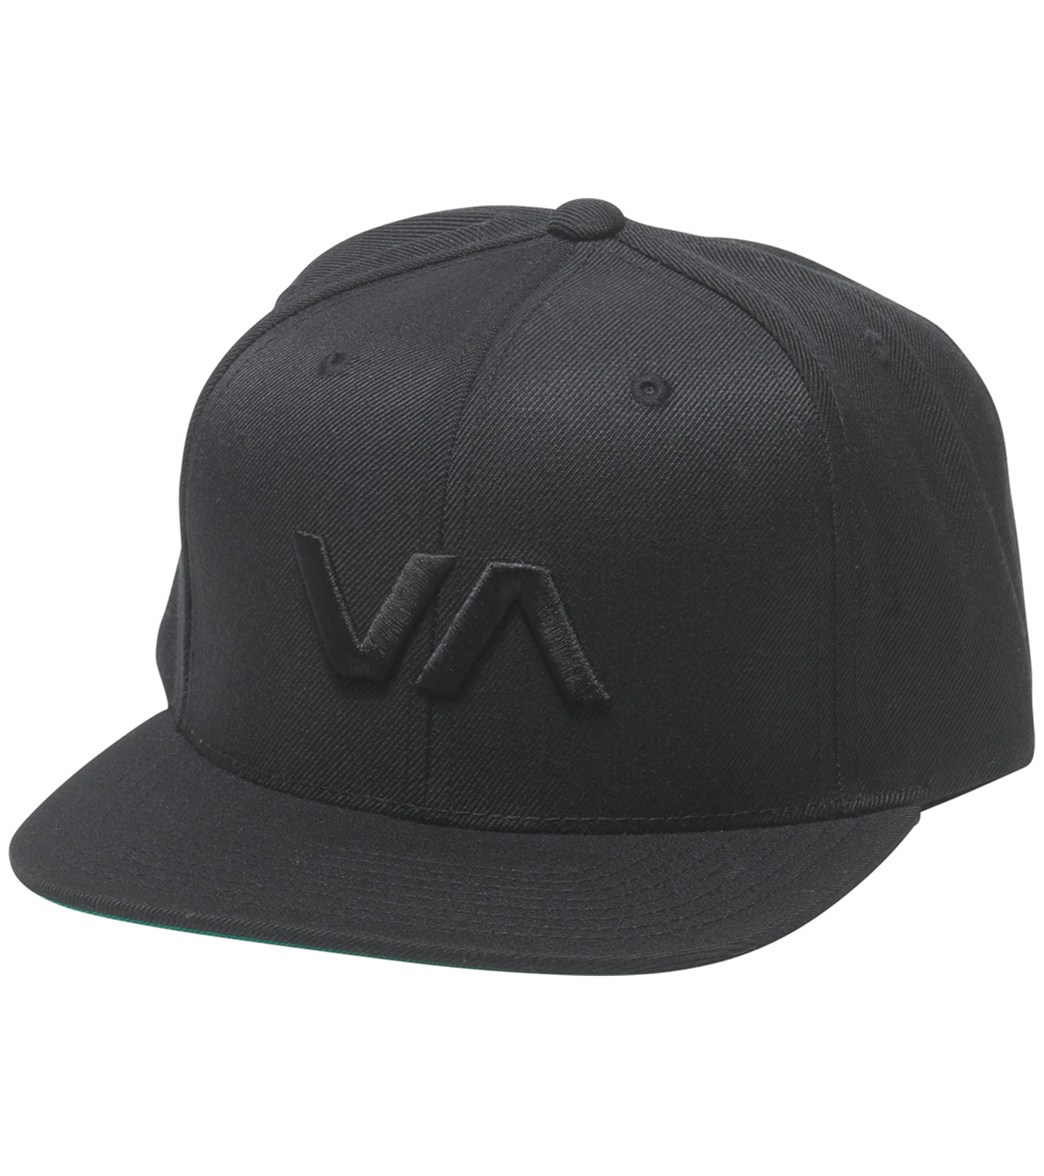 new concept a229c 46e1d RVCA Men s VA Snapback II Hat at SwimOutlet.com